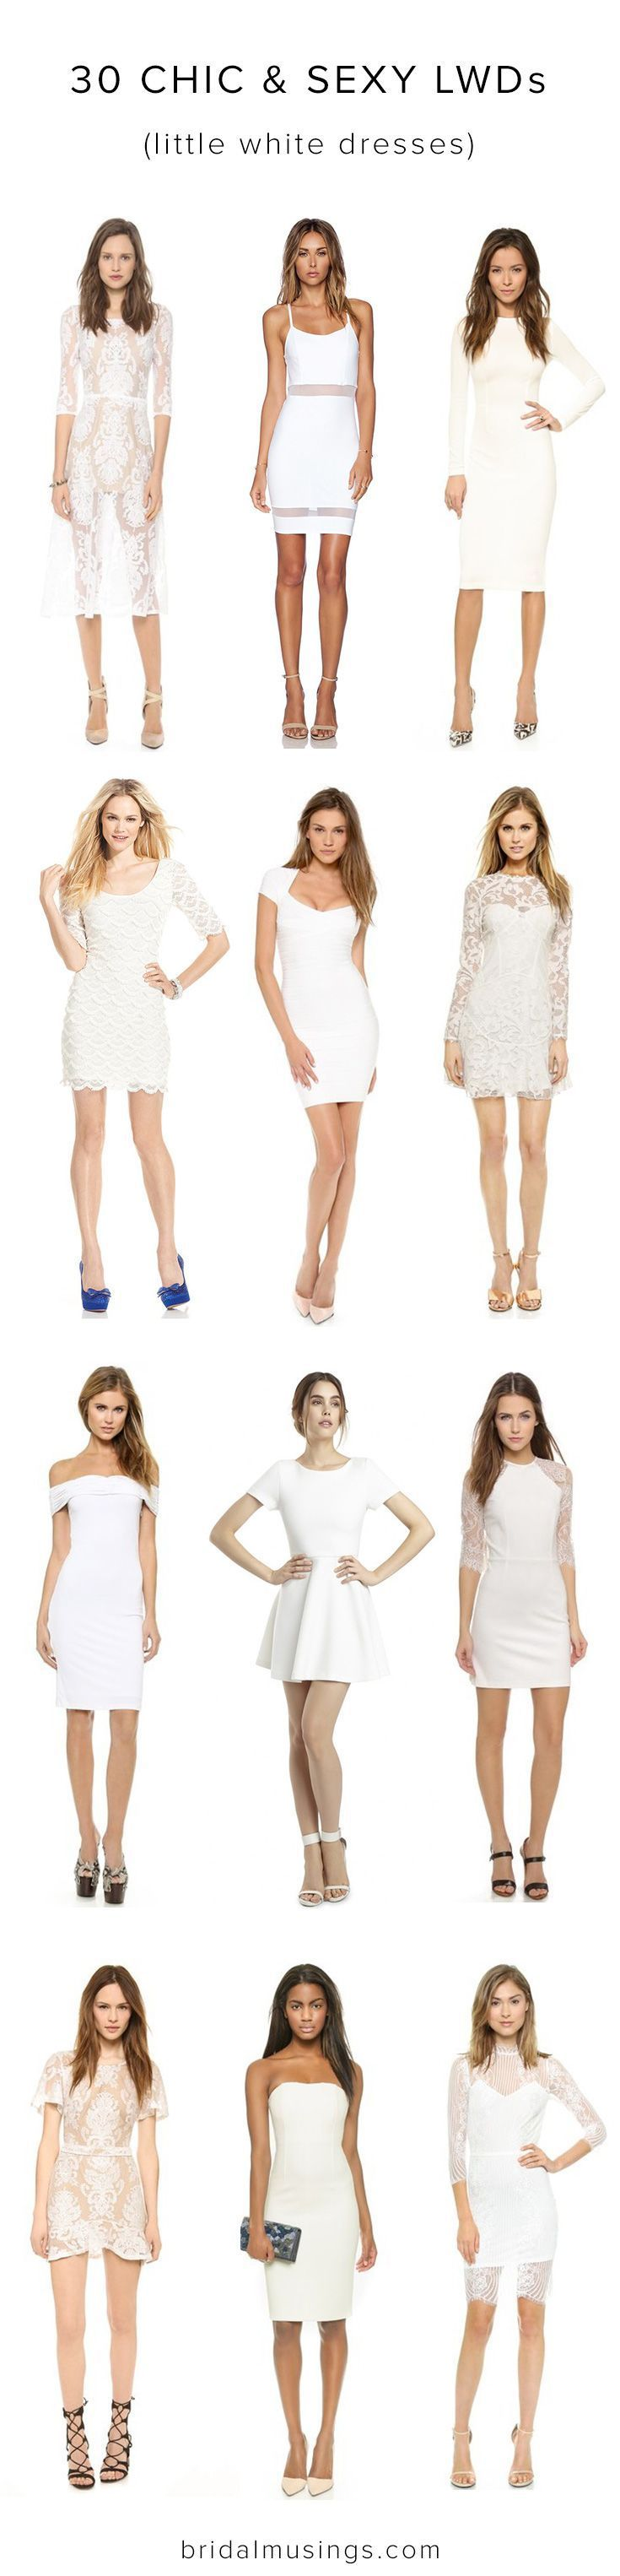 30 of the best Little White Dresses for bridal showers and bachelorette parties!